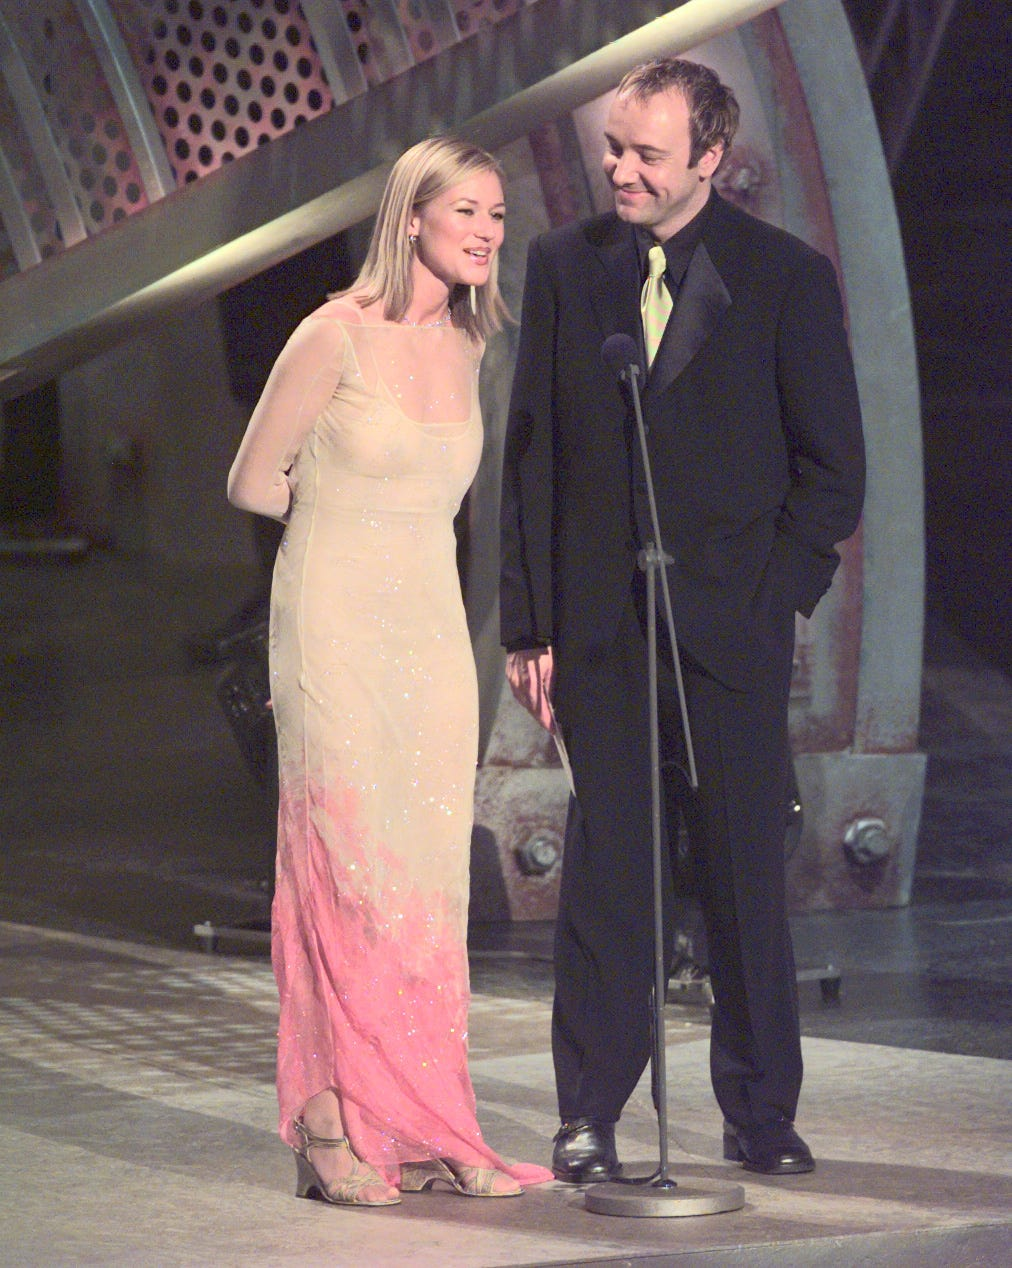 DATE TAKEN: 2/26/97--- Jewel and Kevin Spacey present